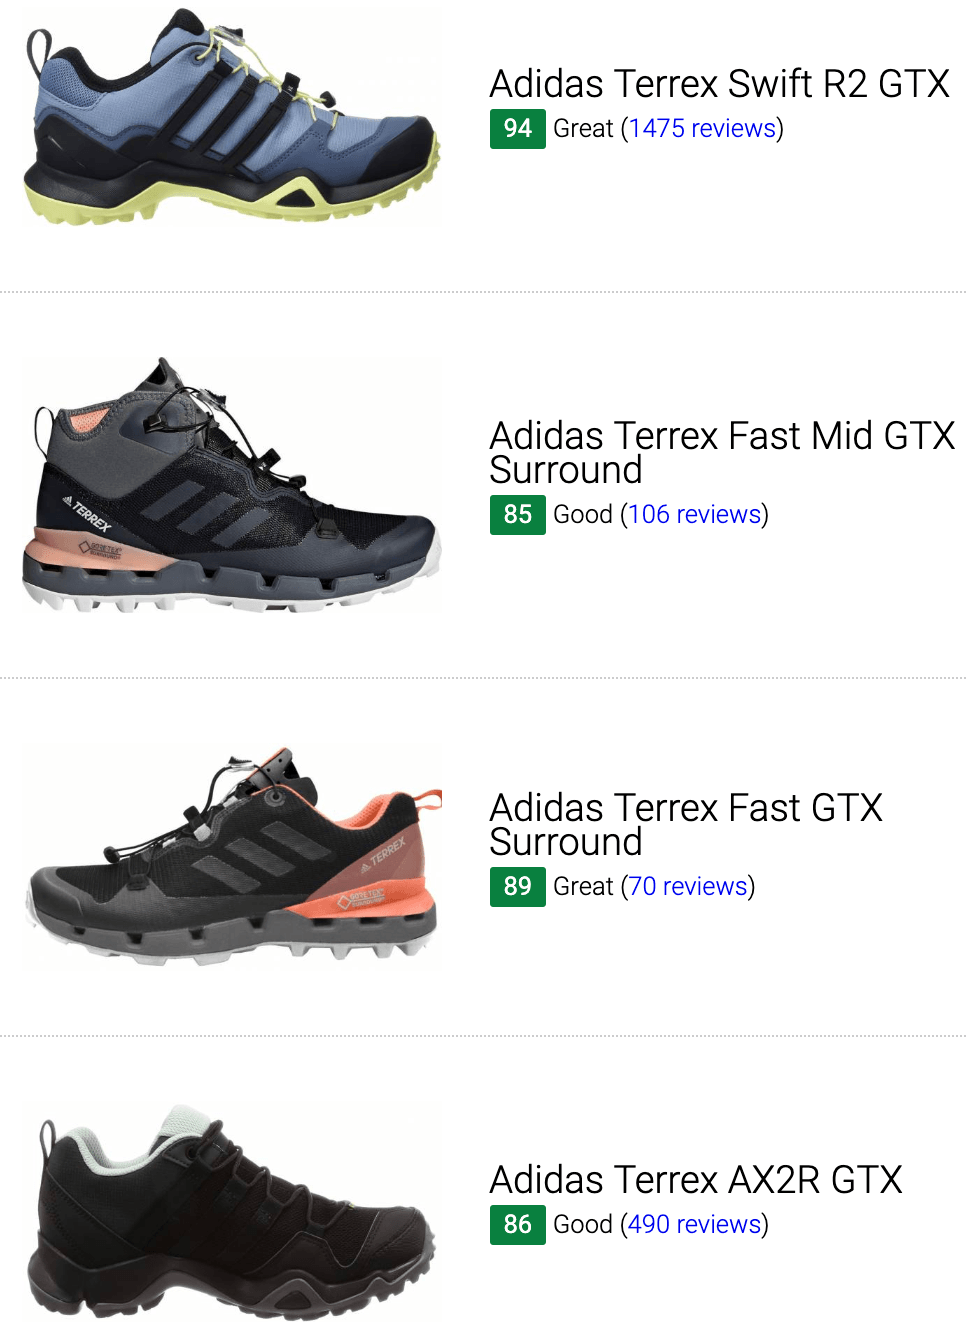 Best Adidas Gore-Tex hiking shoes